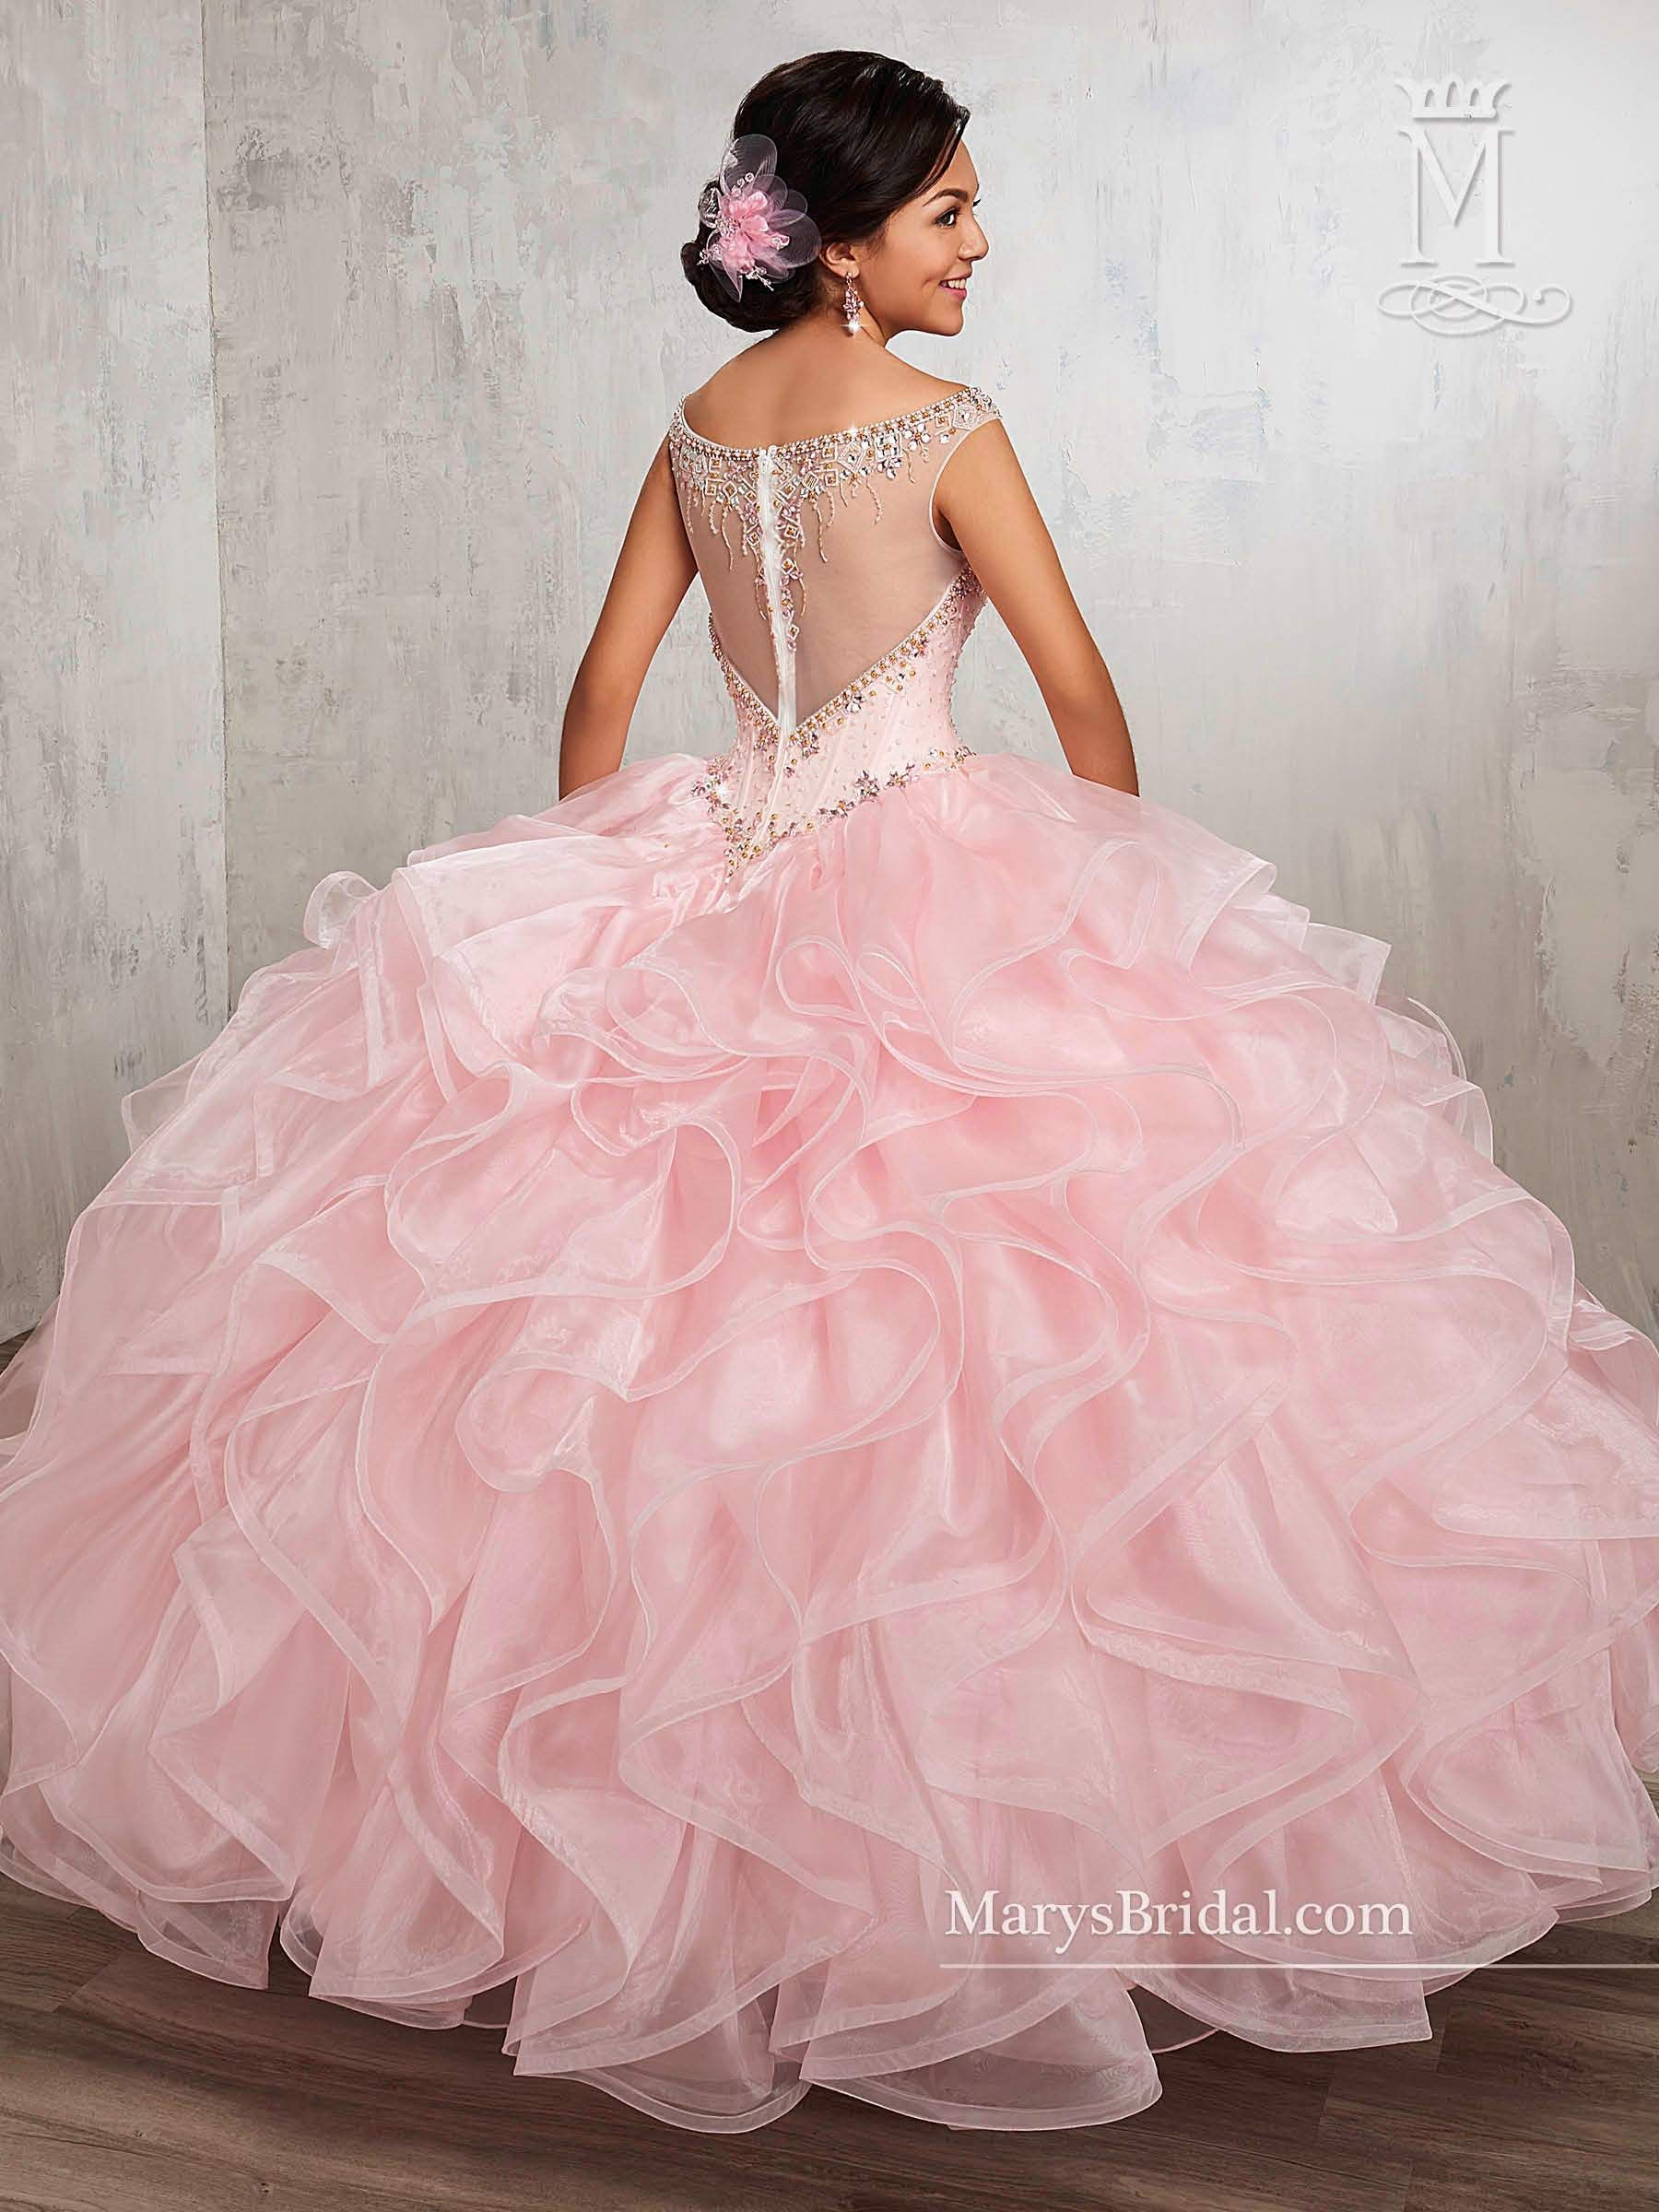 39e24e9bcd2 Illusion Ruffled Quinceanera Dress by Mary s Bridal Princess 4Q513 ...